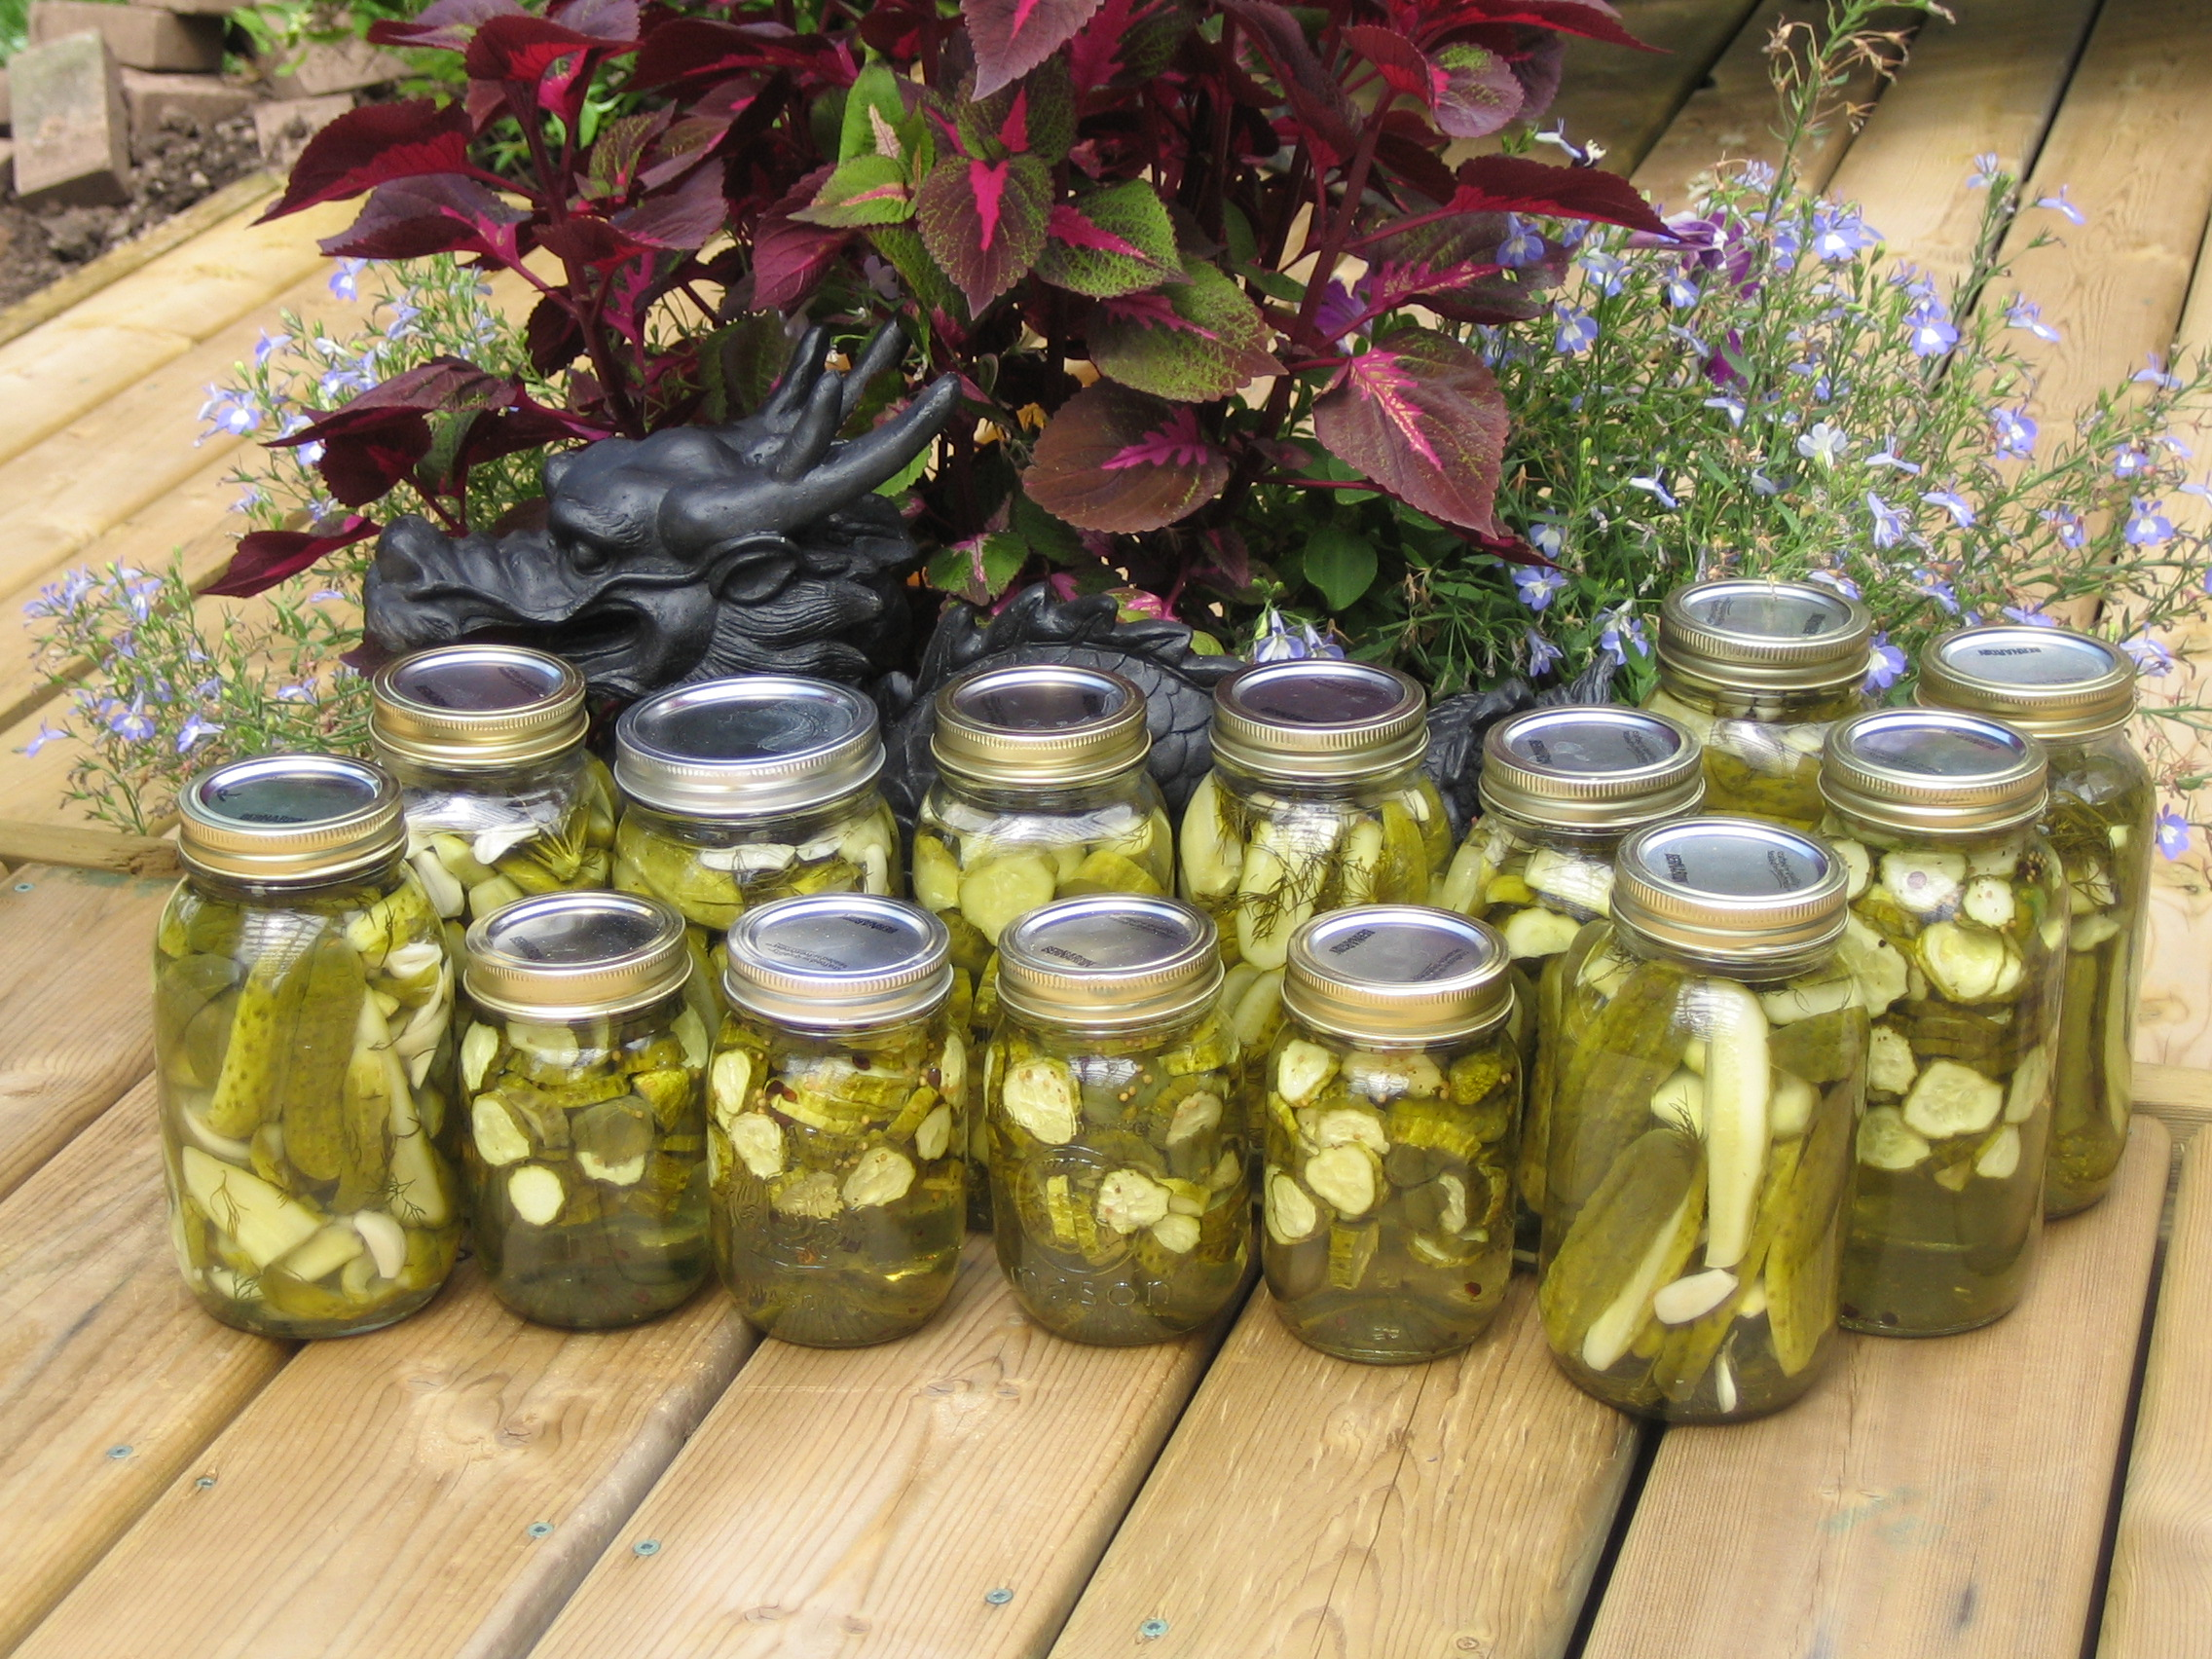 Our crop of pickles after a canning session in the summer